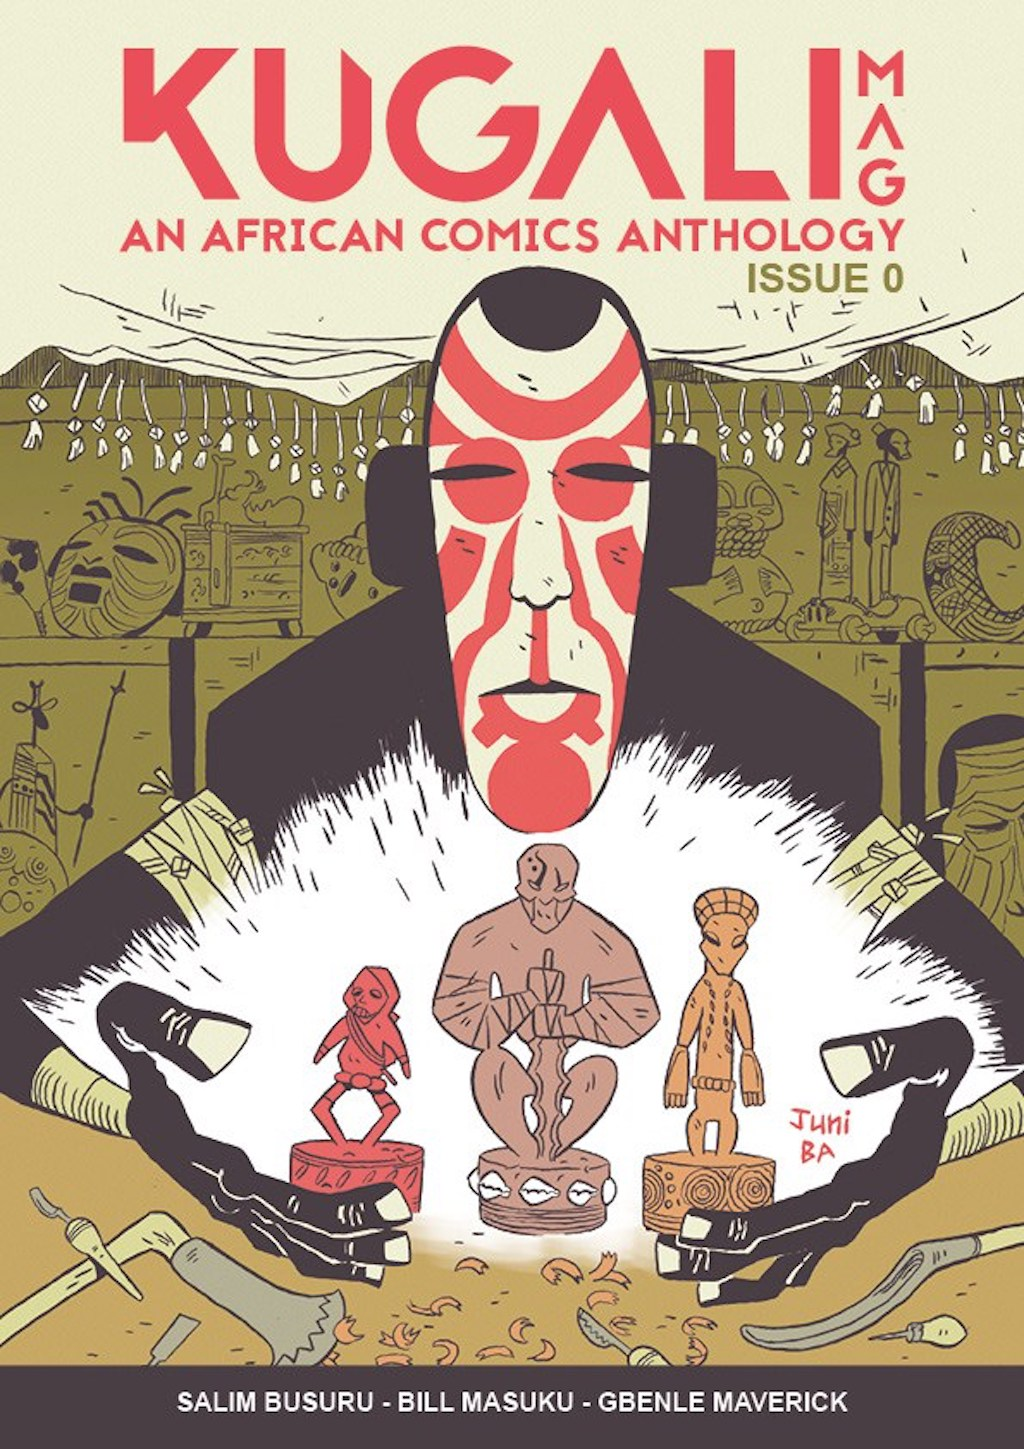 African Literature, African Comics, Yohance, Outcasts of Jupiter, Jinx, Kugali MAG, KOLUMN Magazine, KOLUMN